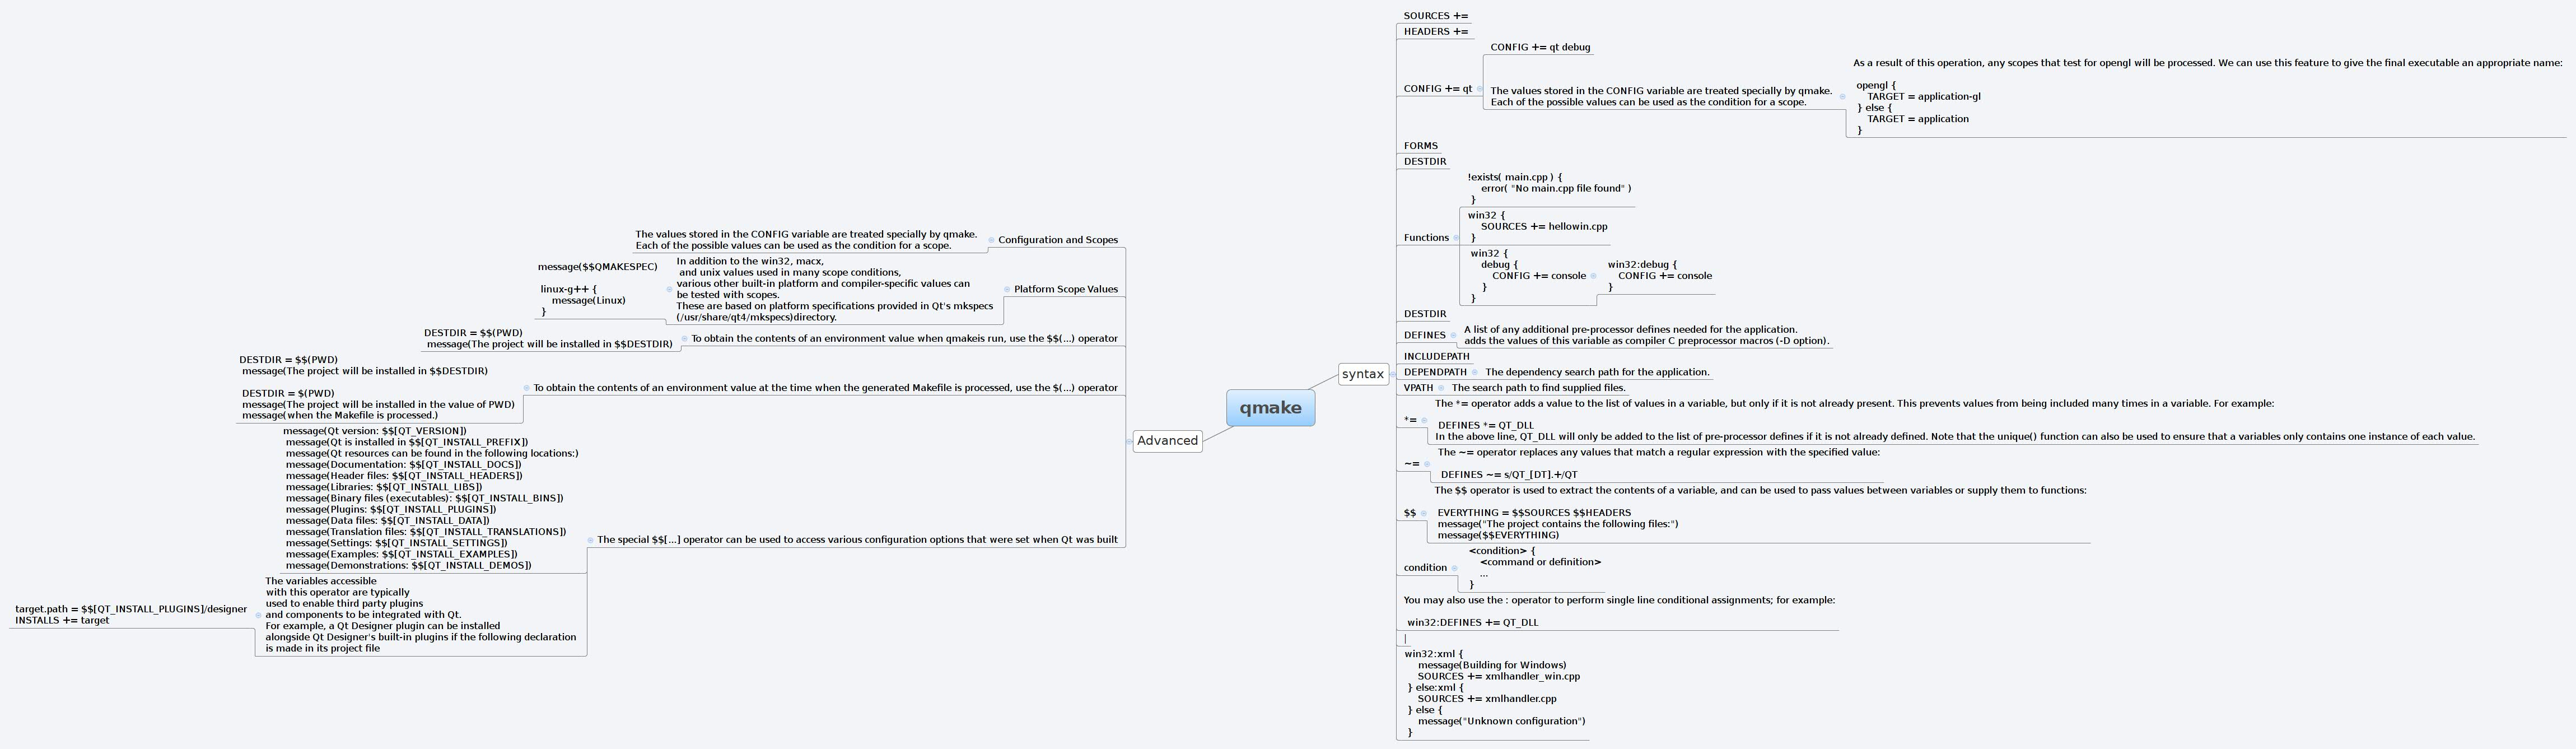 qmake - XMind - Mind Mapping Software